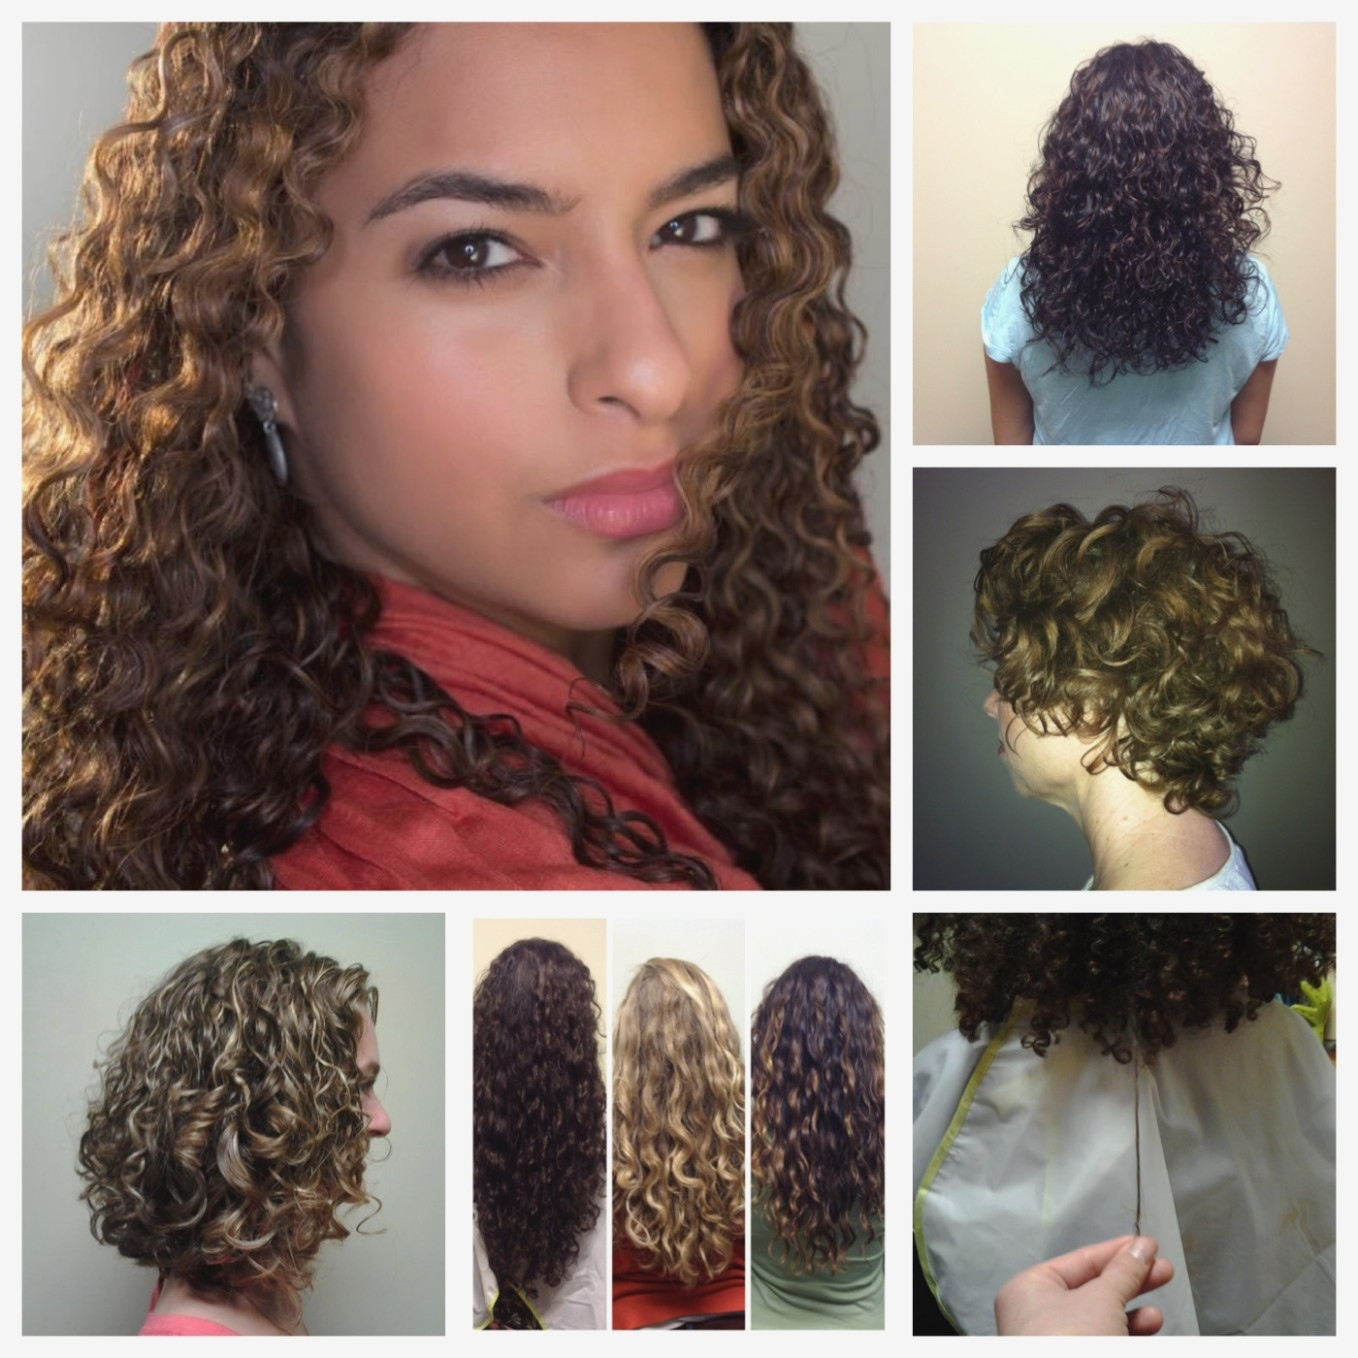 Hair Salons For Curly Hair Near Me In Concert With Winter Hair throughout Haircut Places For Curly Hair Near Me